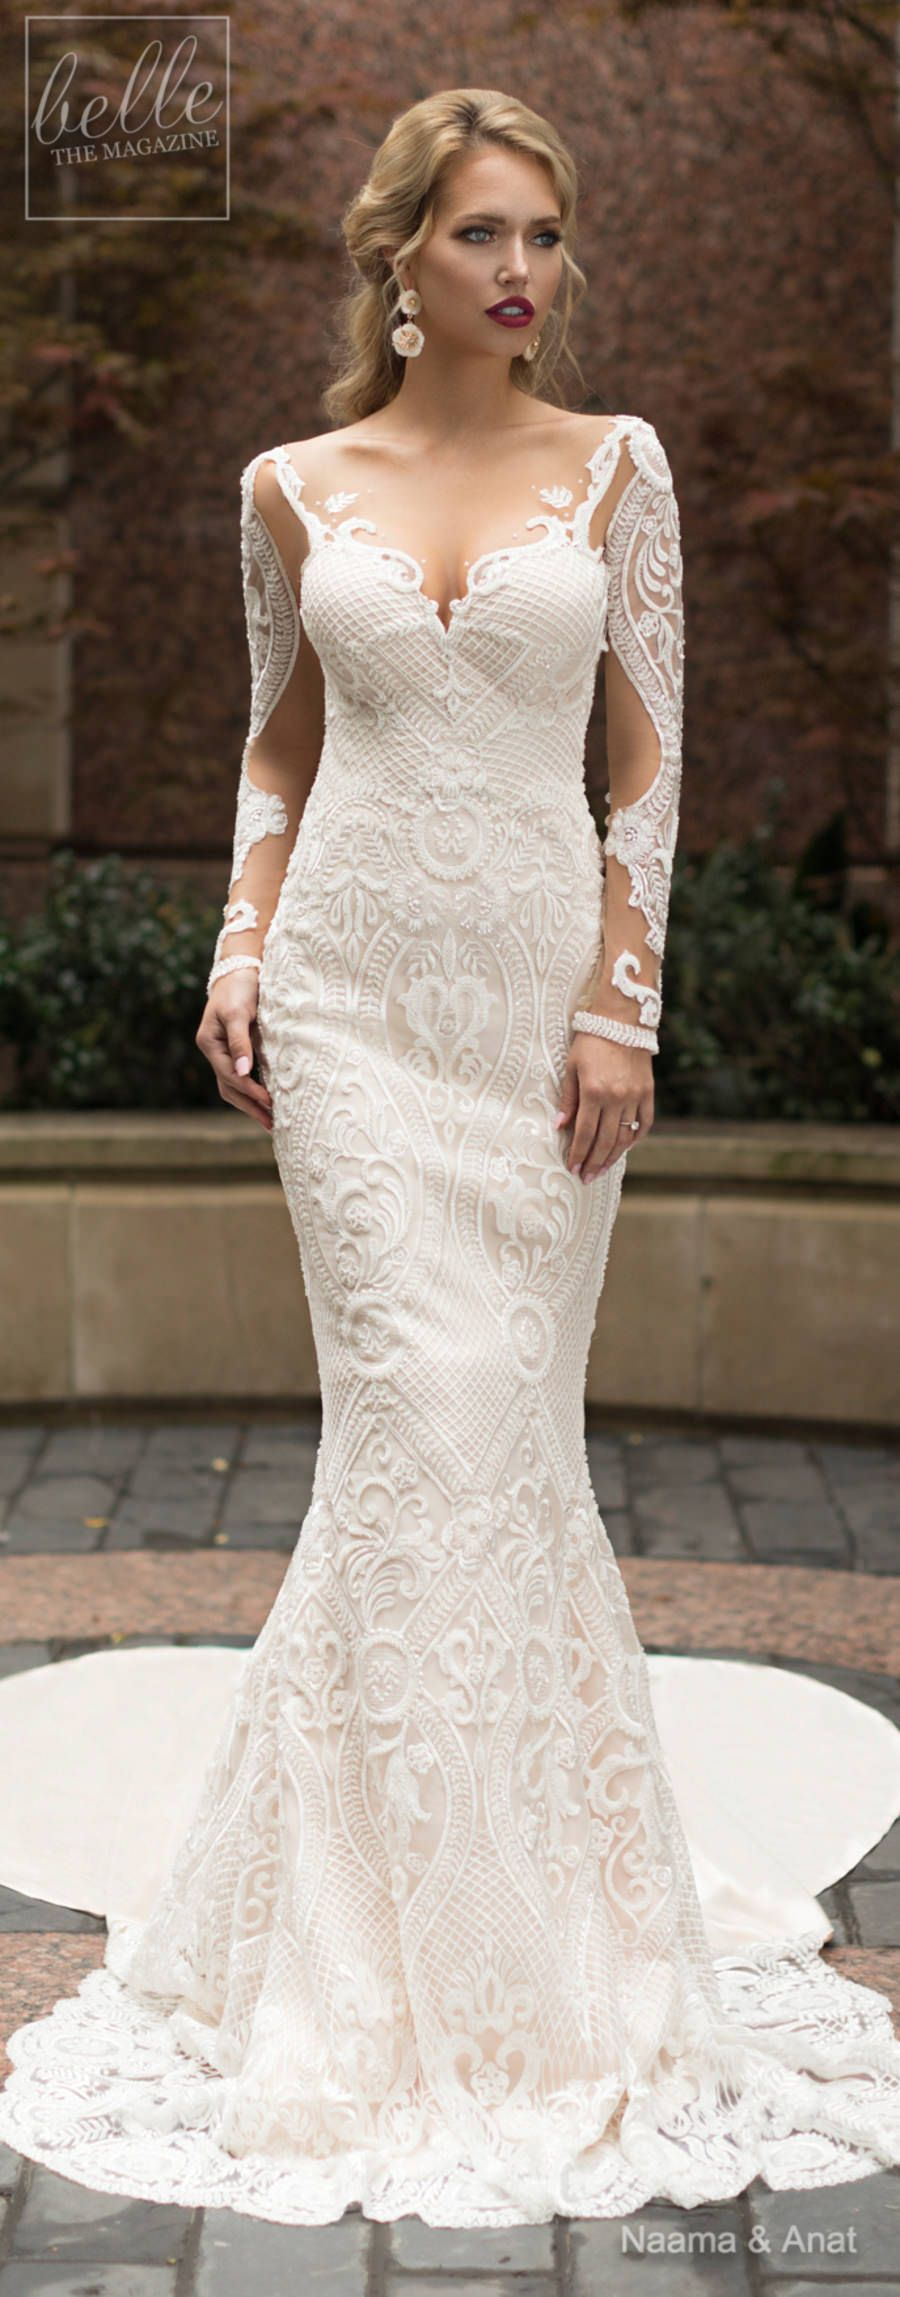 Cowl back lace wedding dress  Naama and Anat Wedding Dress Collection   Dancing Up the Aisle